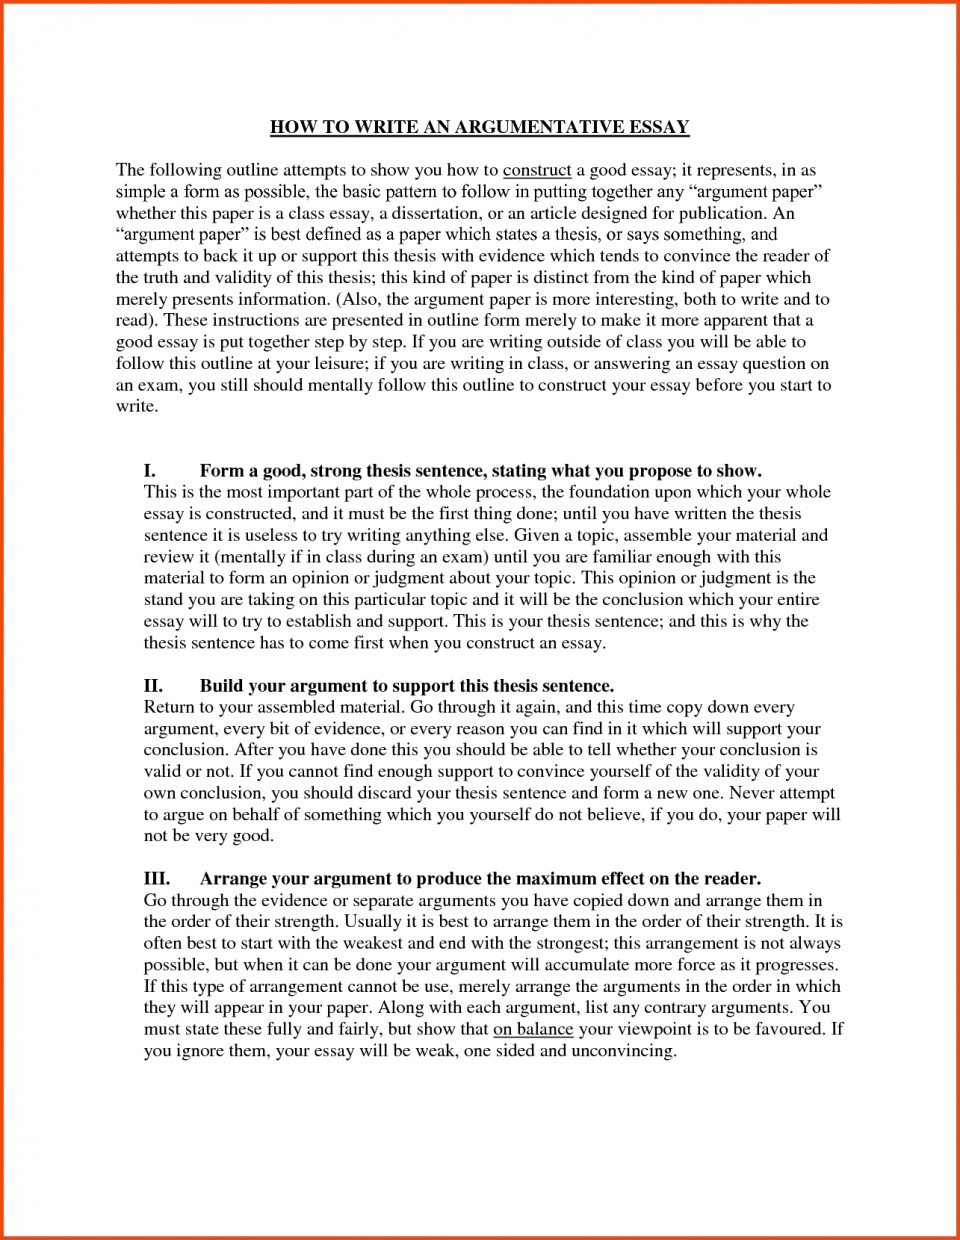 005 Essay Example How To Start An Brilliant Ideas Of Good Ways About Yourself Dissertation Nice Amazing Can I A Book Observation Examples With Quote 960